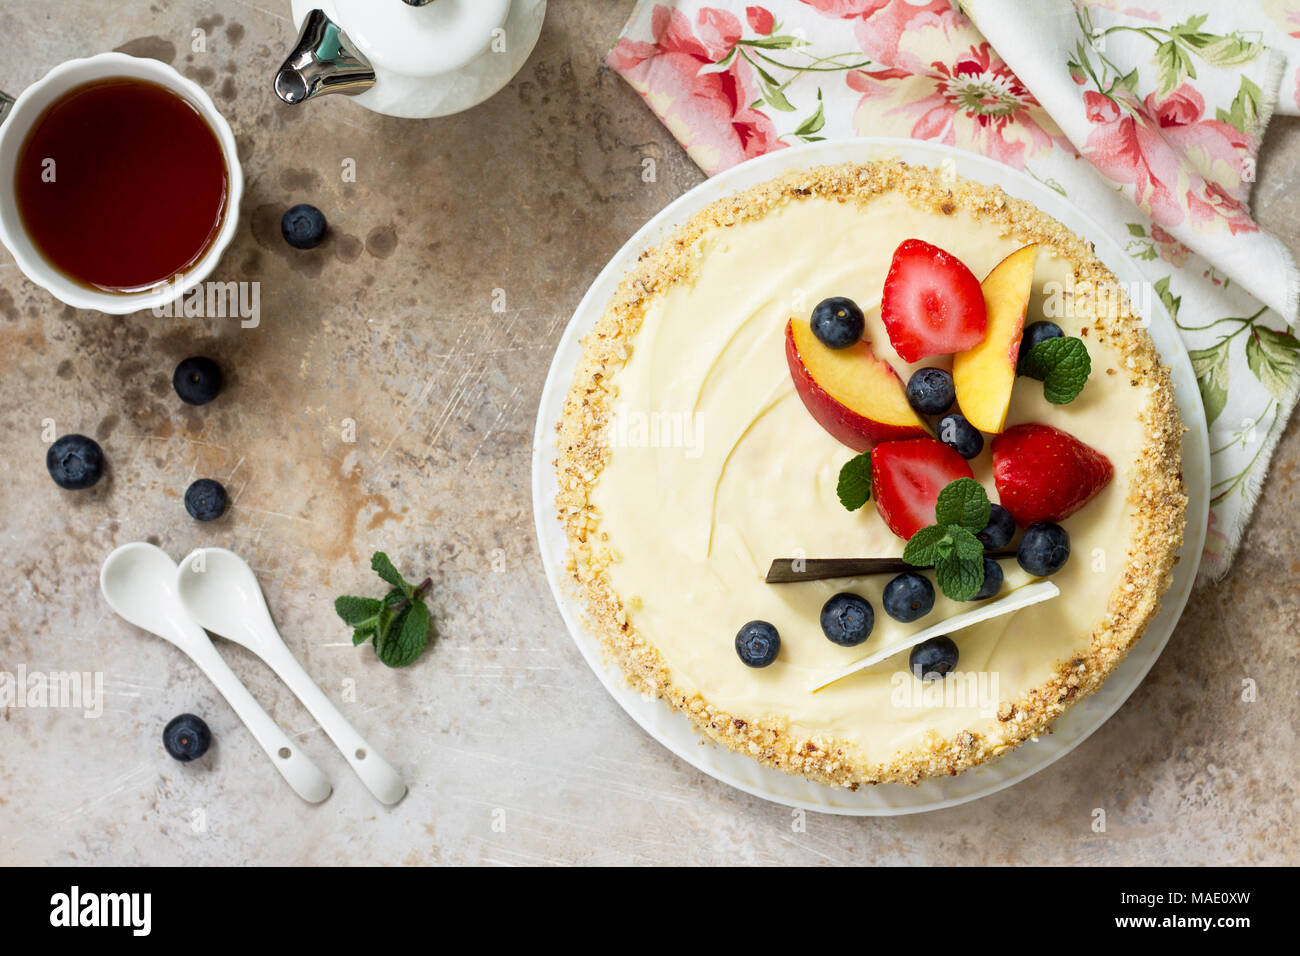 Delicious dessert cake with fresh berries and whipped cream, sweet delicious holiday cake with blueberries and strawberries on stone background. - Stock Image